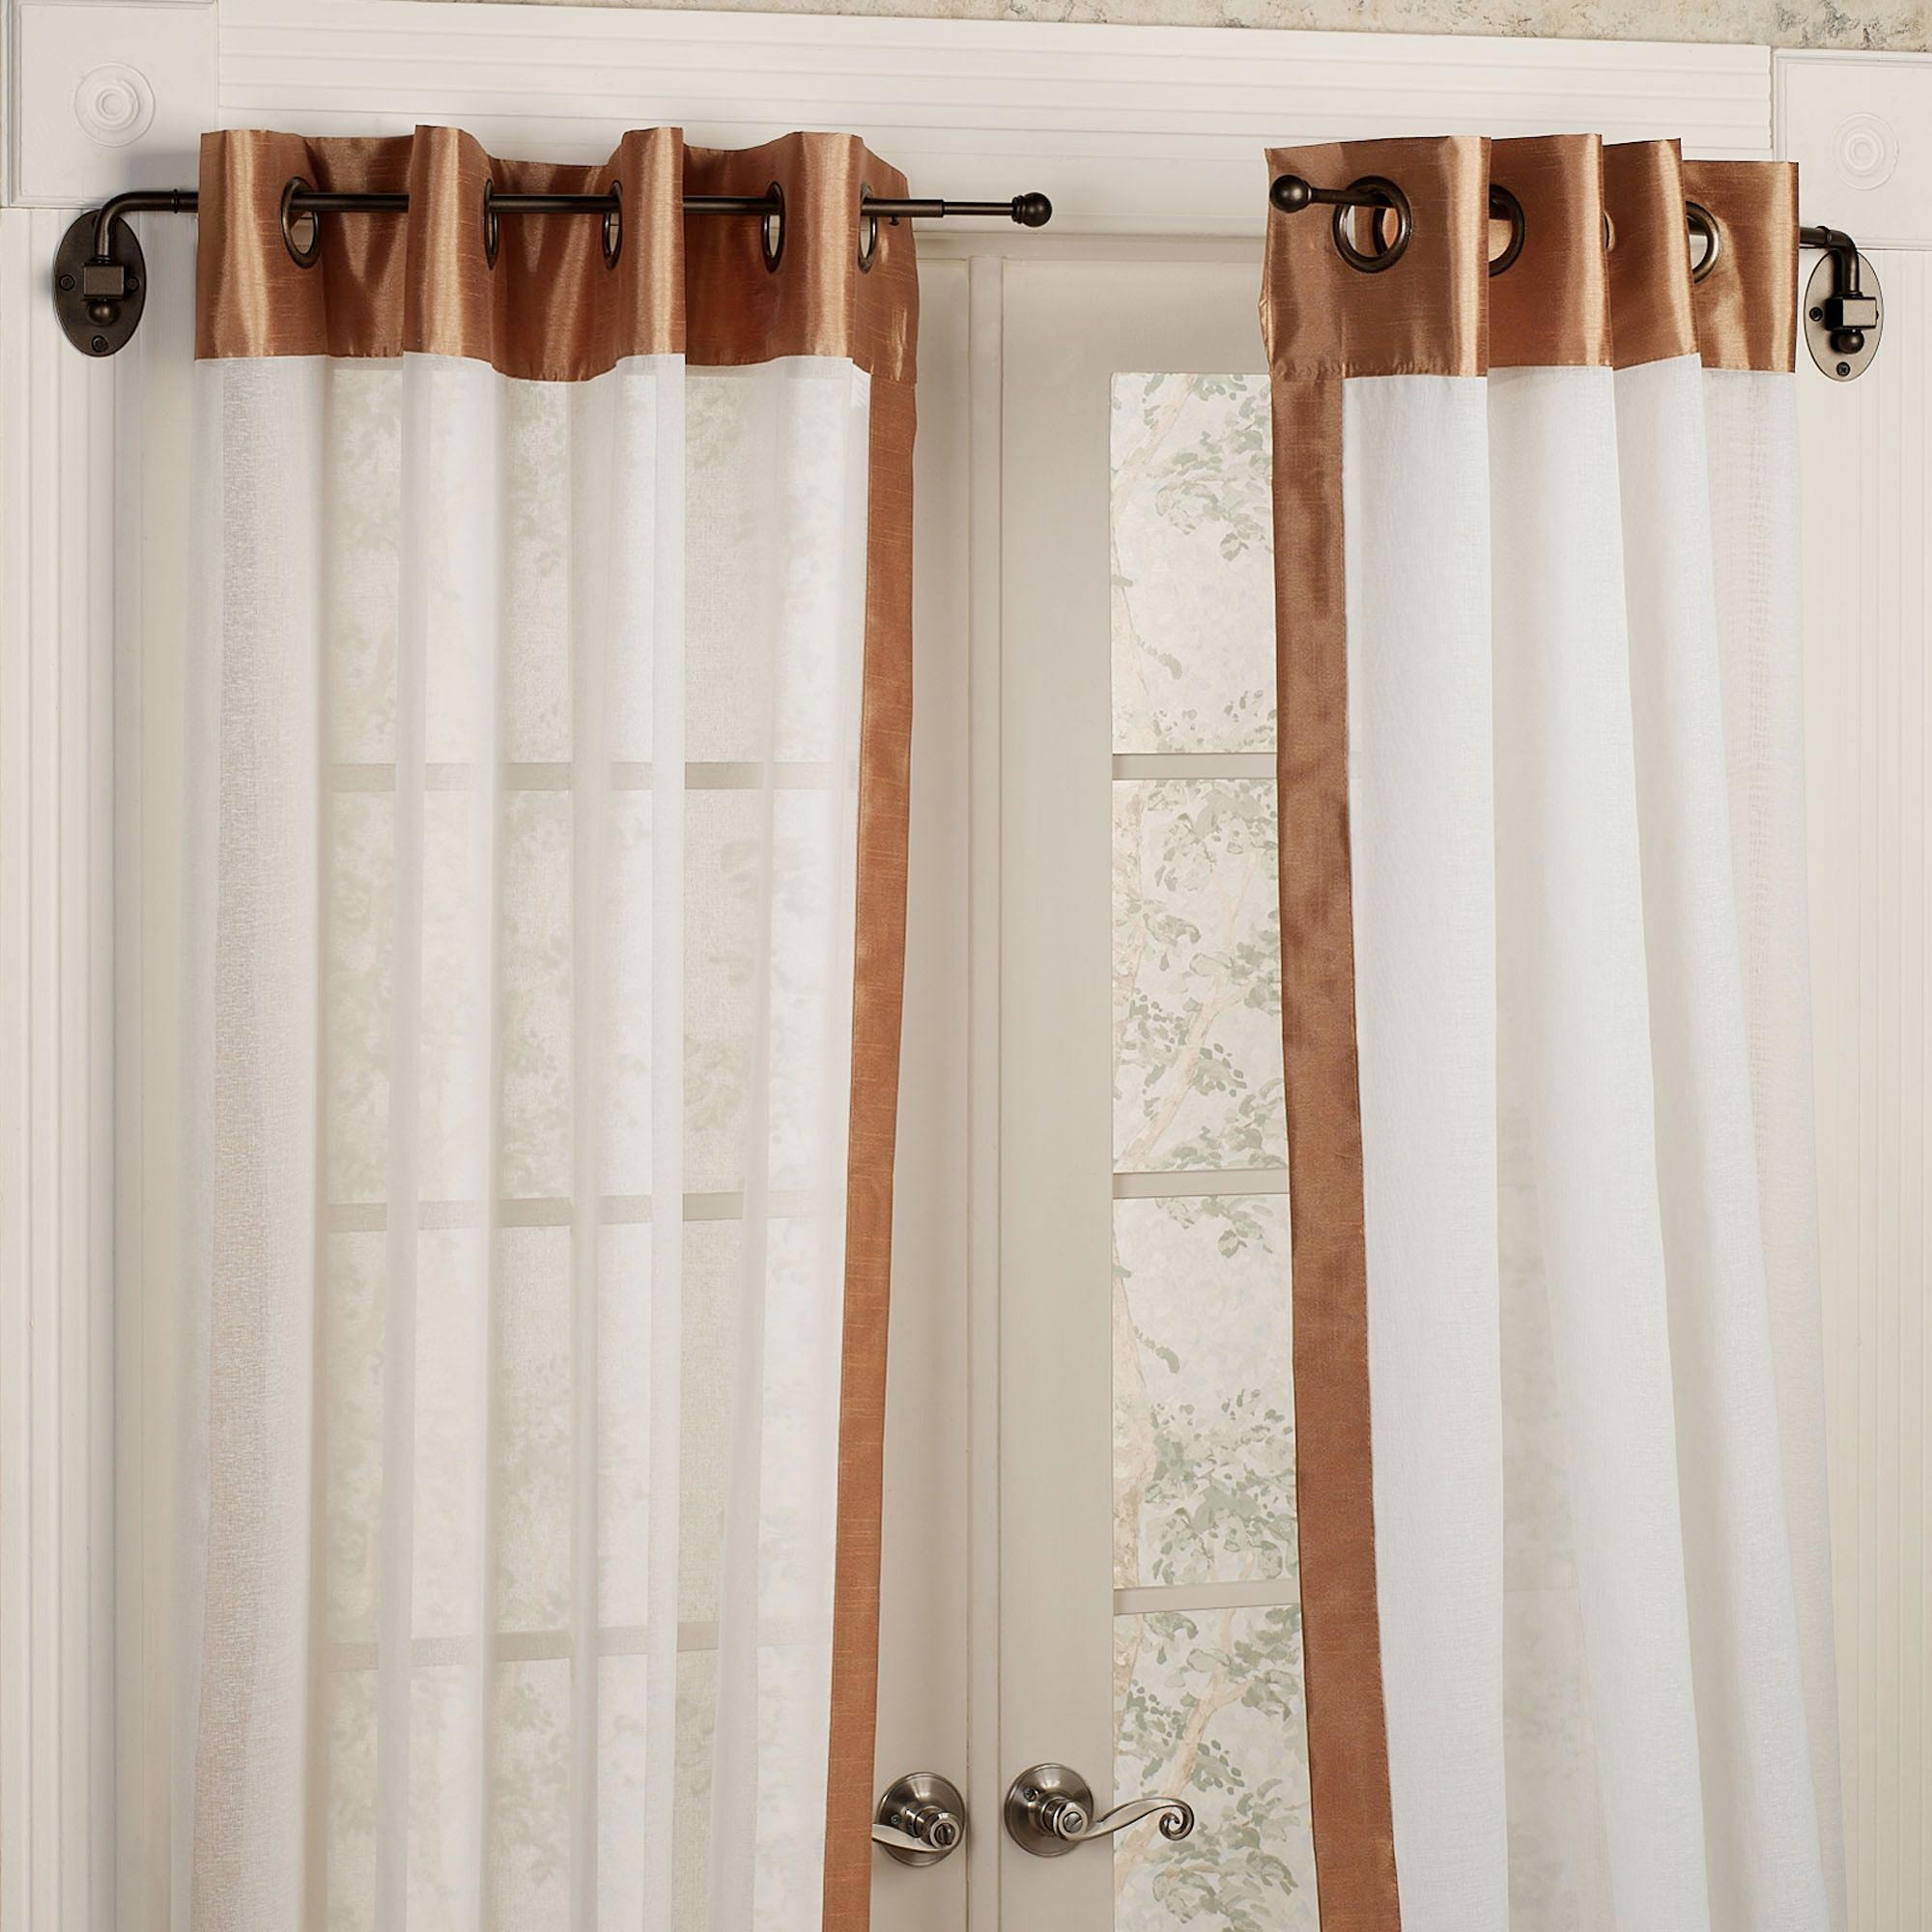 Short Decorative Curtain Rods 09